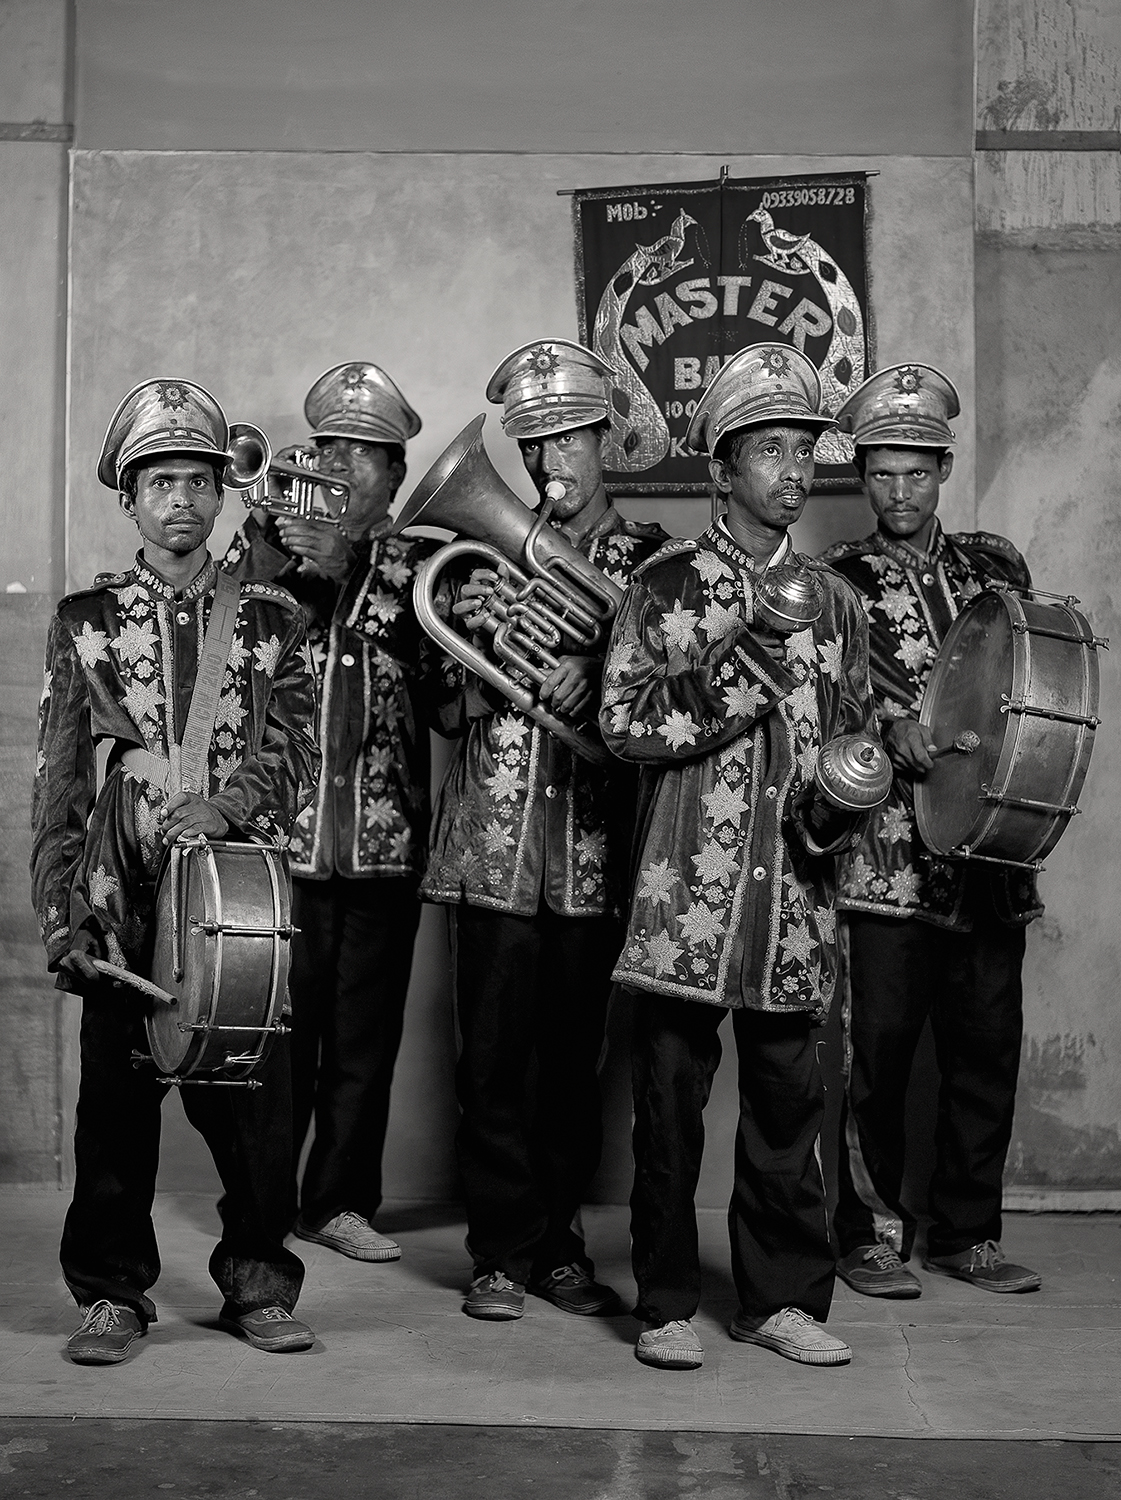 - Master Band-Party Boys, $6 on Assignment2011Archival pigment print22 x 17 inches